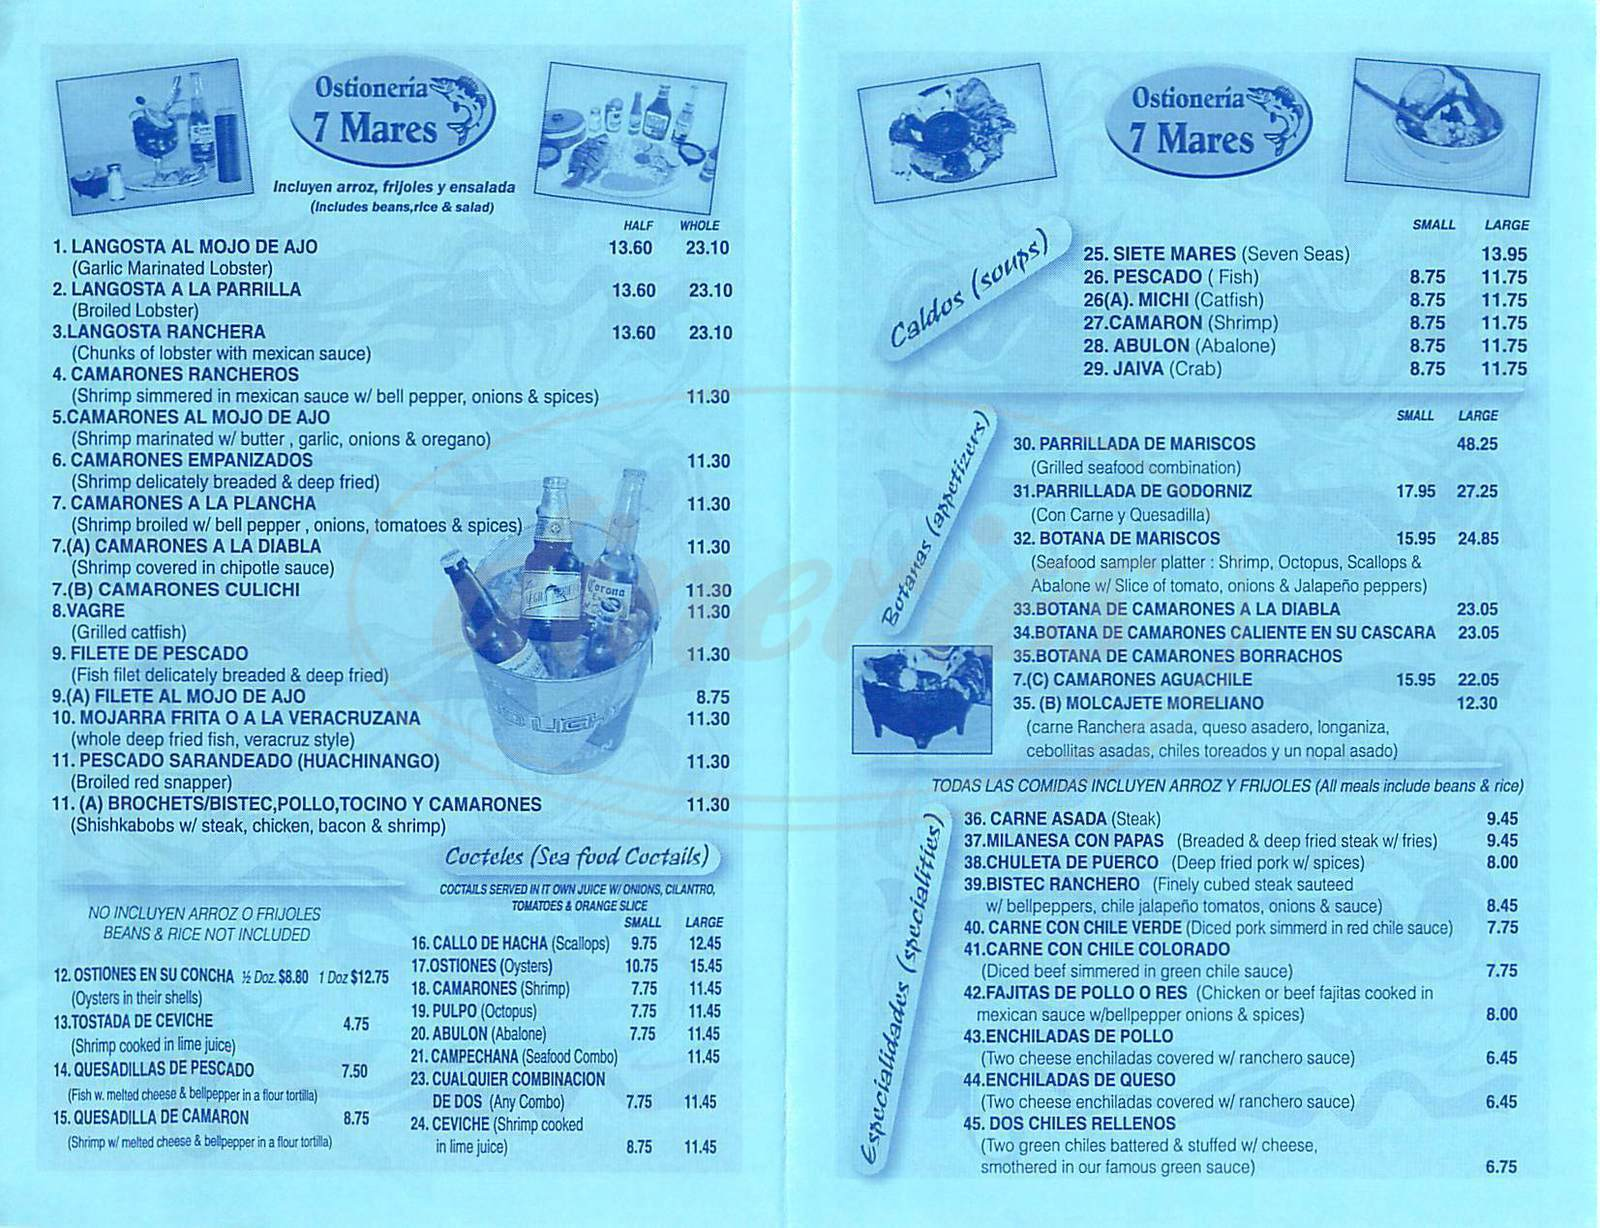 menu for Ostioneria Siete Mares